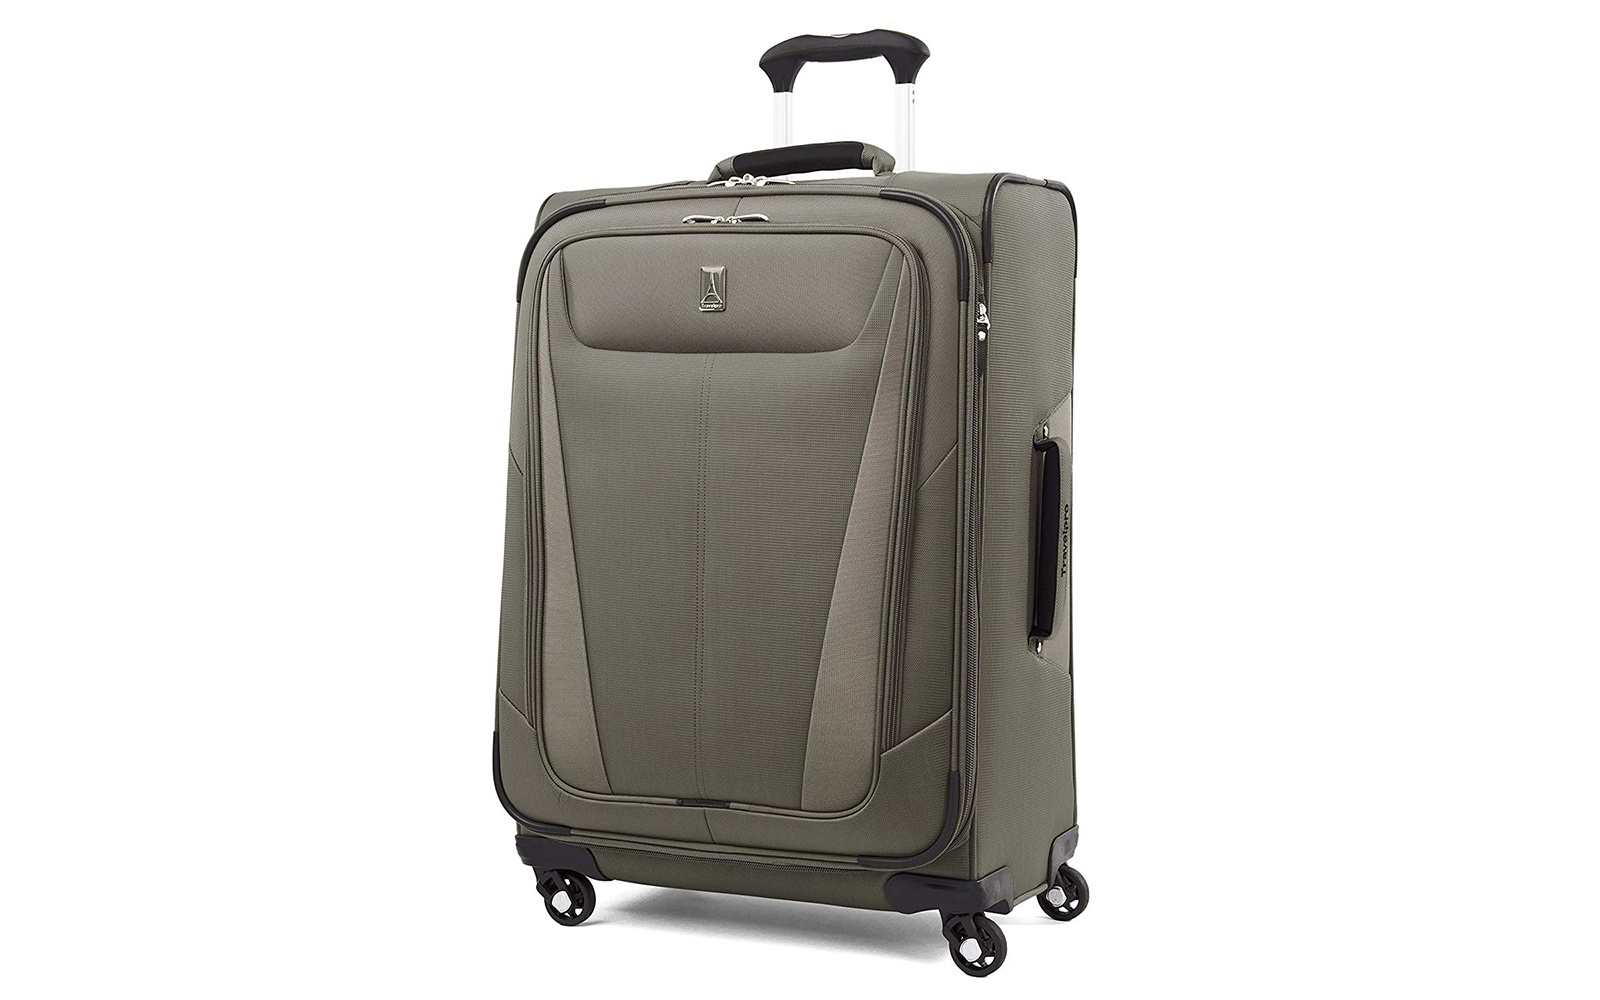 Travelpro Platinum Elite bag